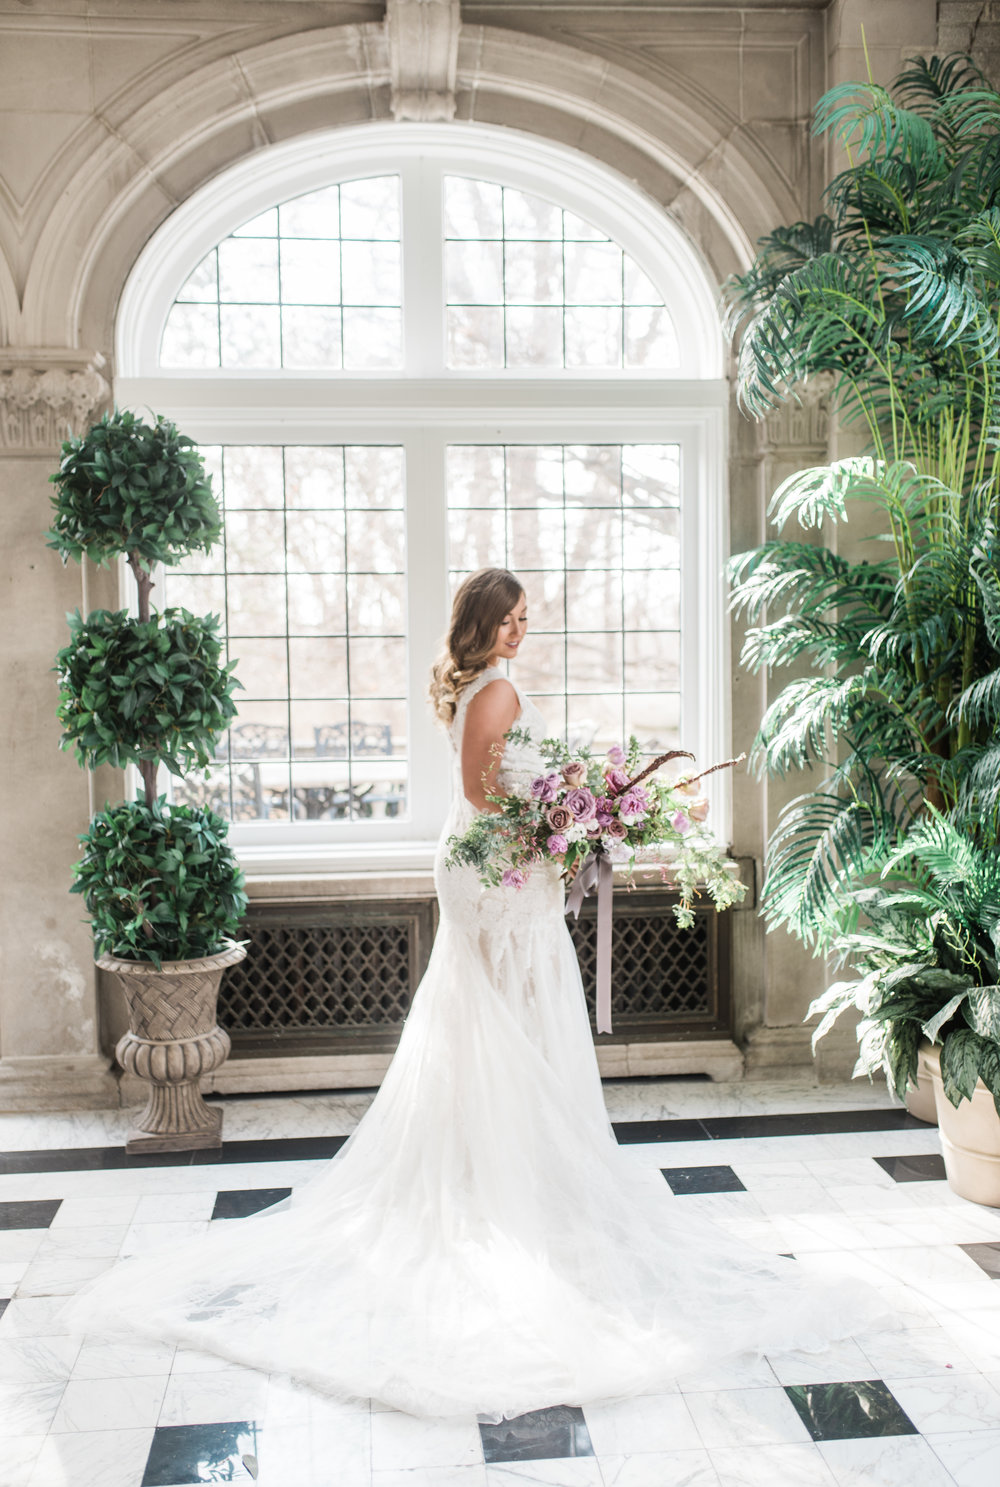 How to choose the Wedding Photographer that's Right for You